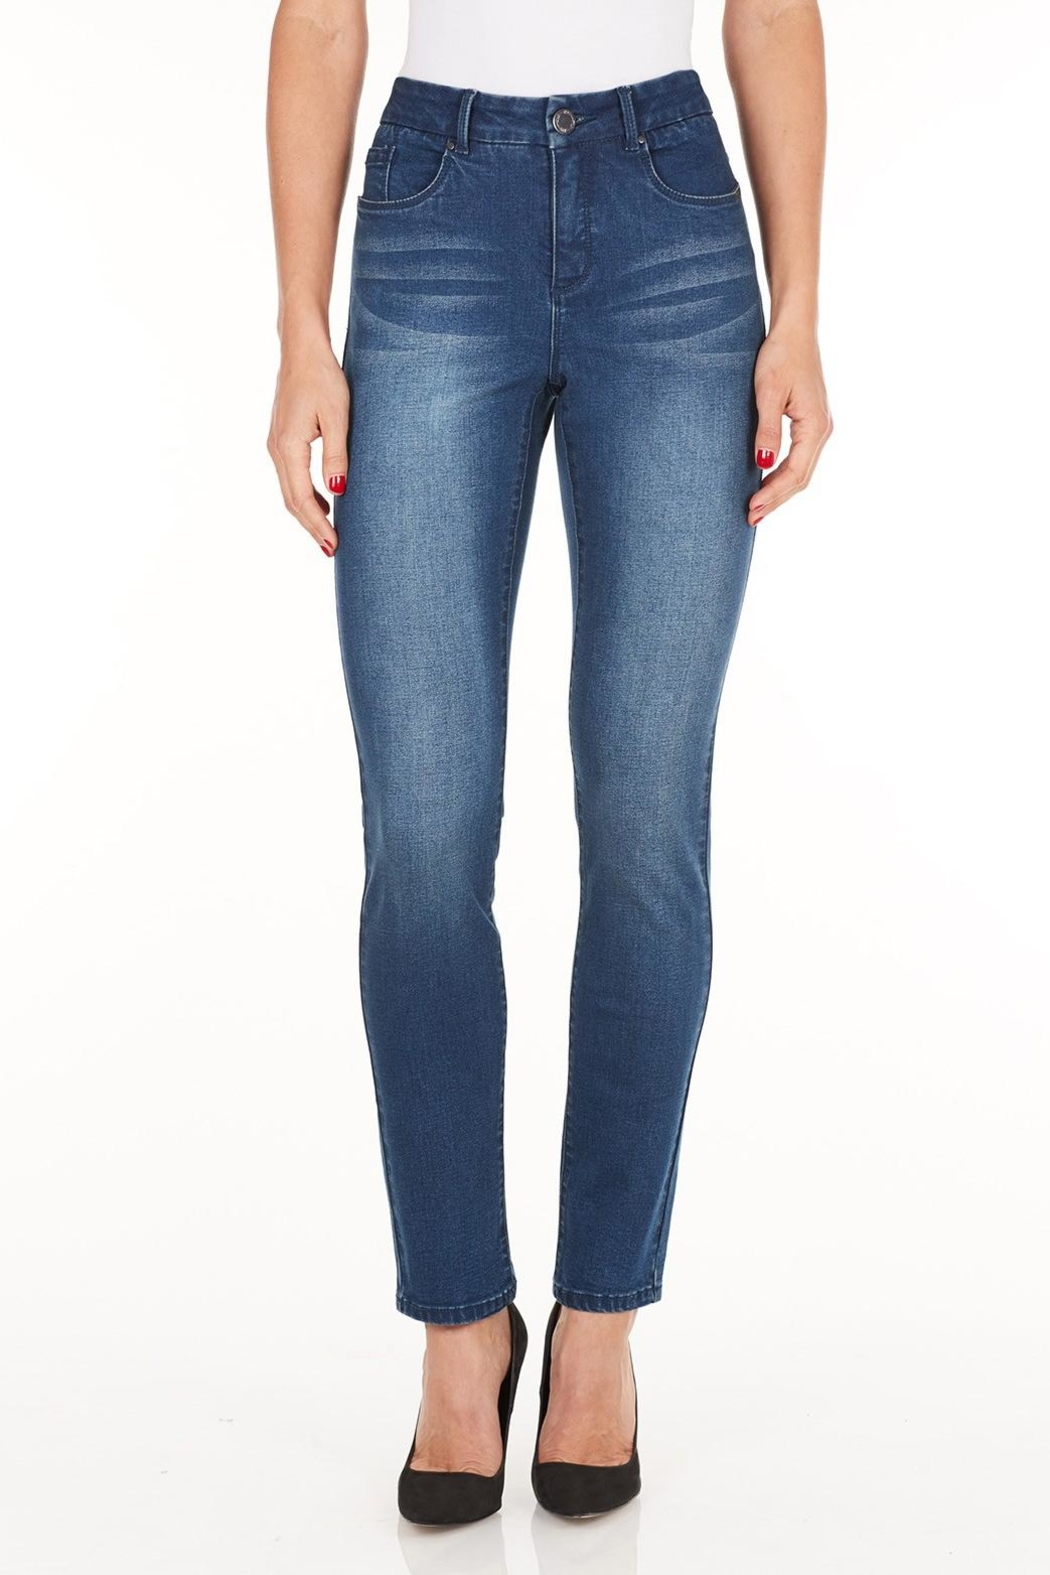 FDJ French Dressing Slim Blue Jeans - Main Image